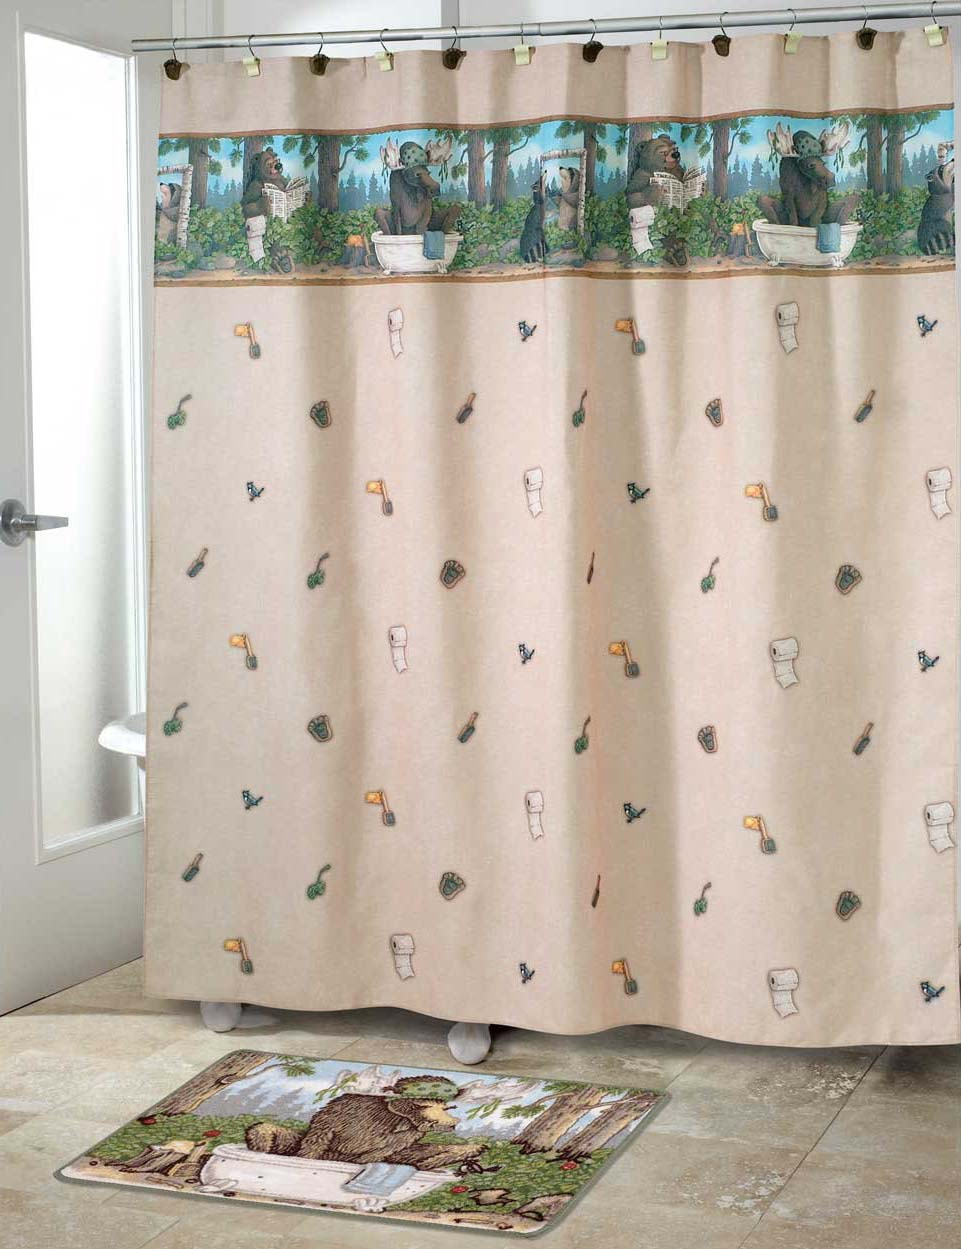 Taking Care of Business Shower Curtain & Accessories - Shower Curtains, Shower & Bath Accessories, Kids Shower Curtains